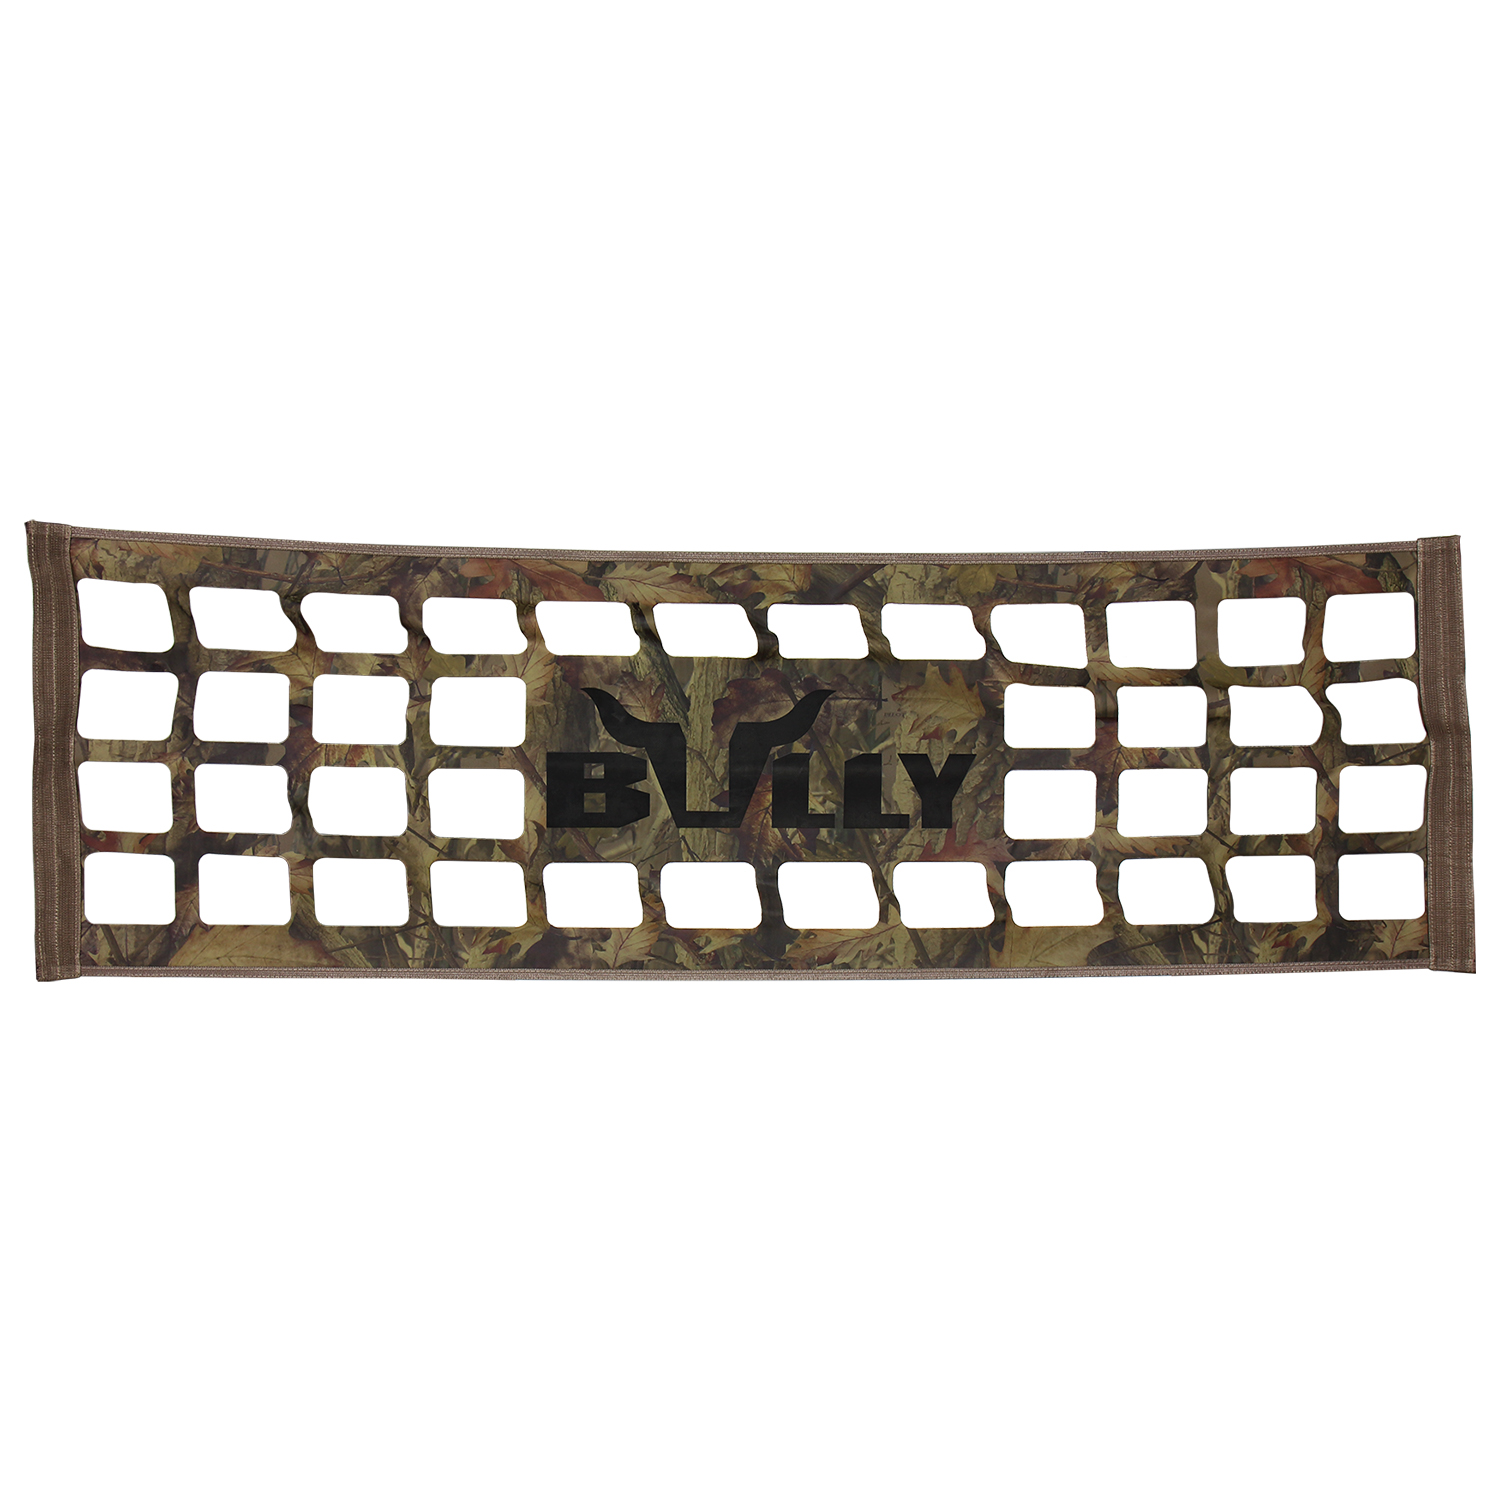 Bully Camouflage Tailgate Net for Mid to Full-Sized Trucks